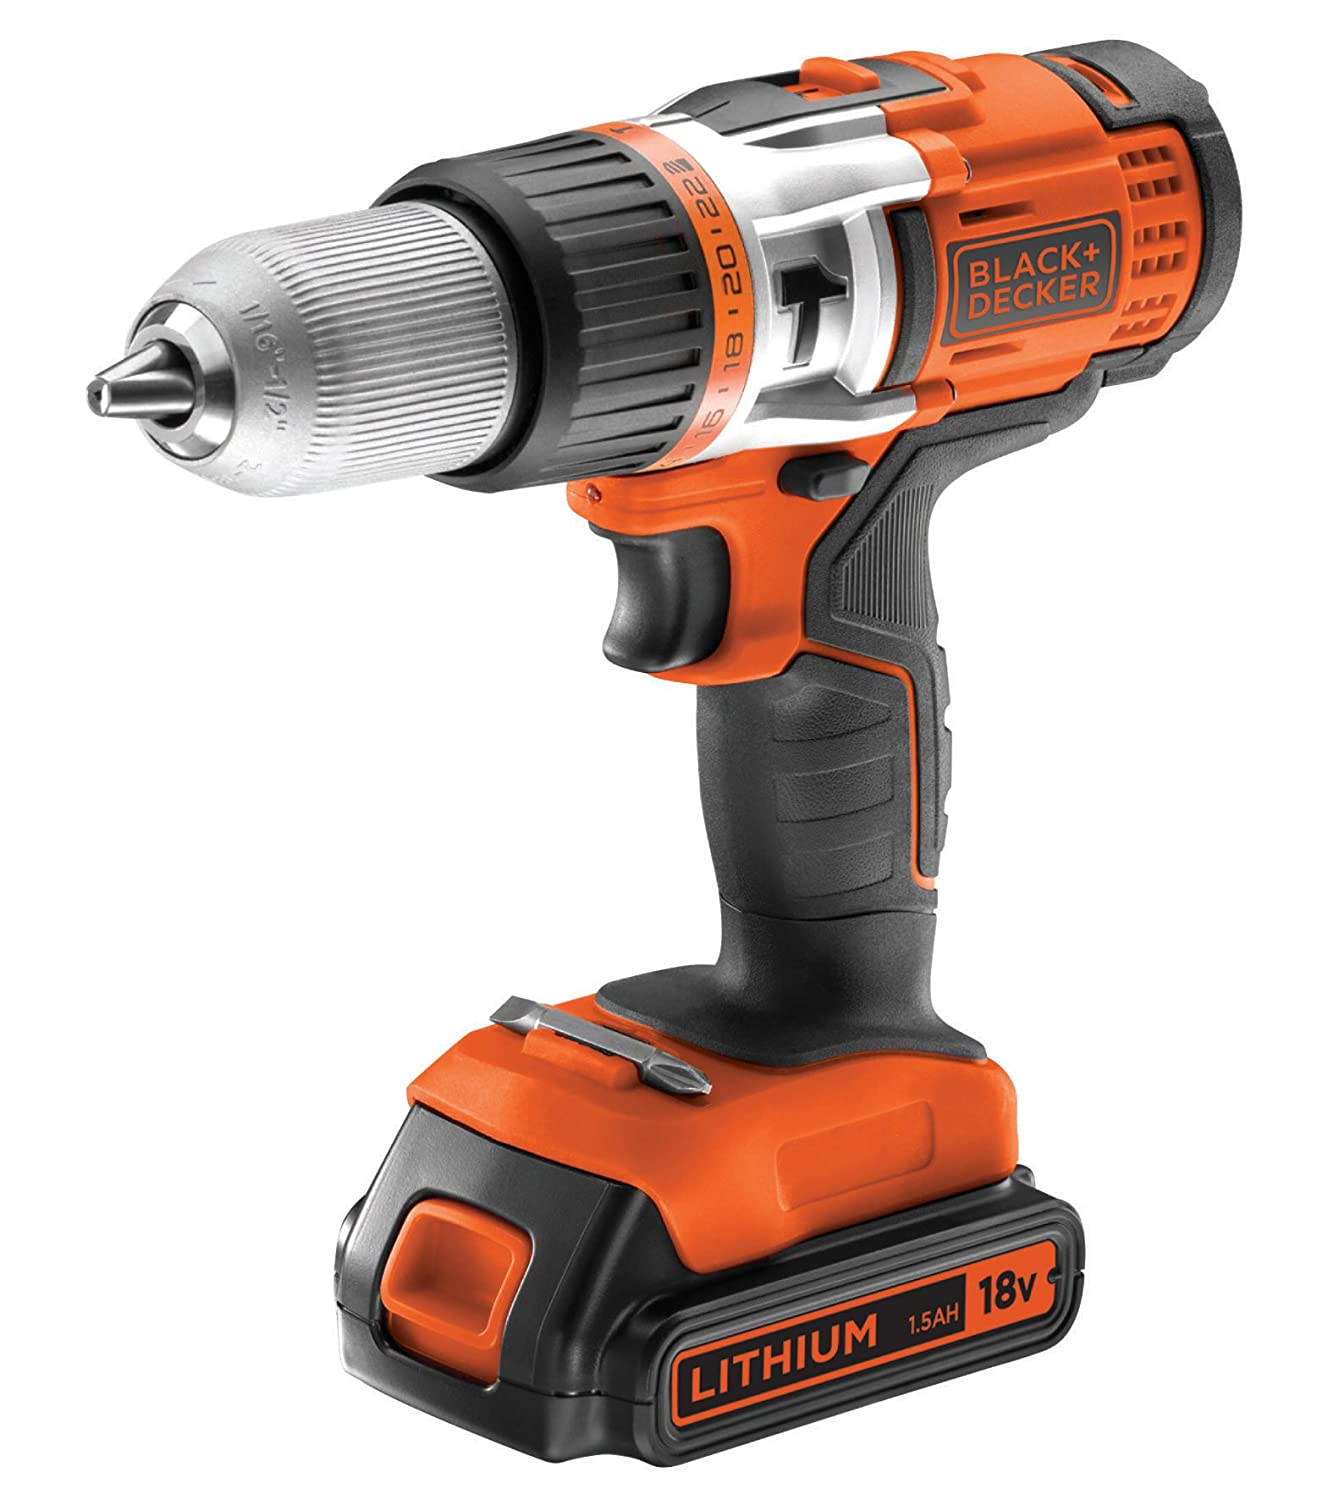 Black + Decker EGBHP188BK Perceuse sans Fil Stanley Black & Decker France EGBHP188BK-QW